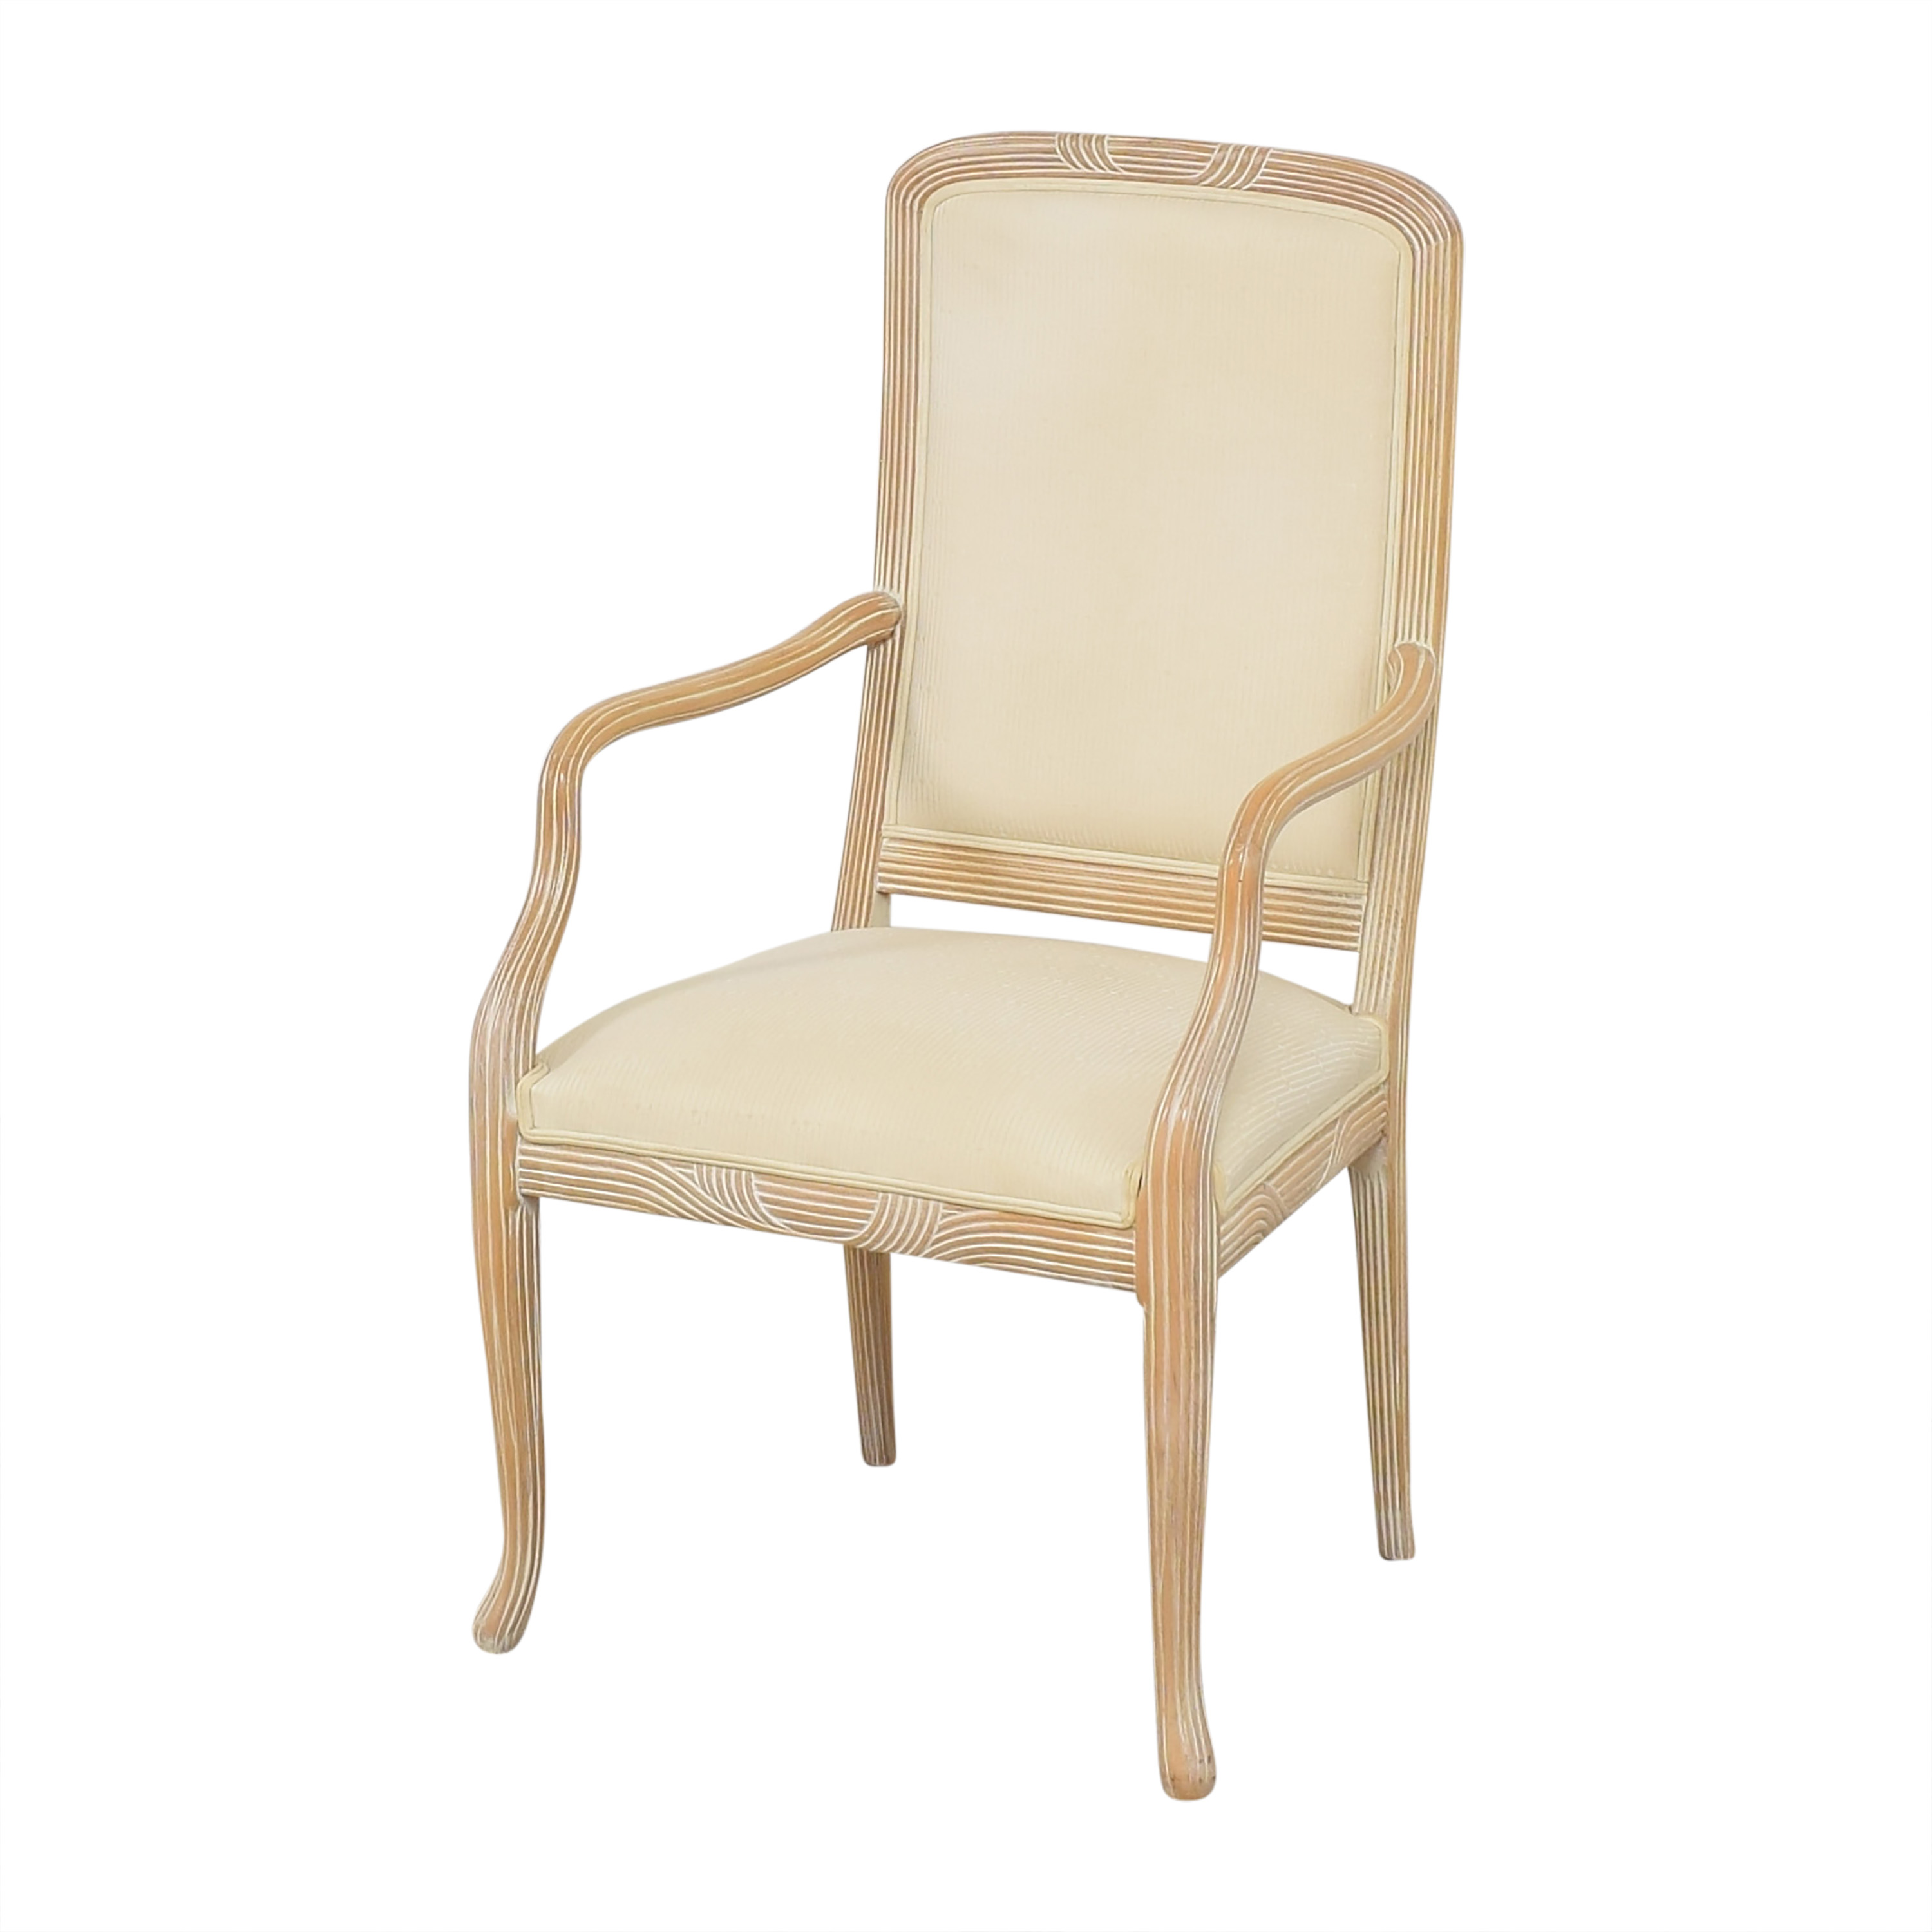 shop Buying & Design Upholstered Dining Arm Chair Buying & Design